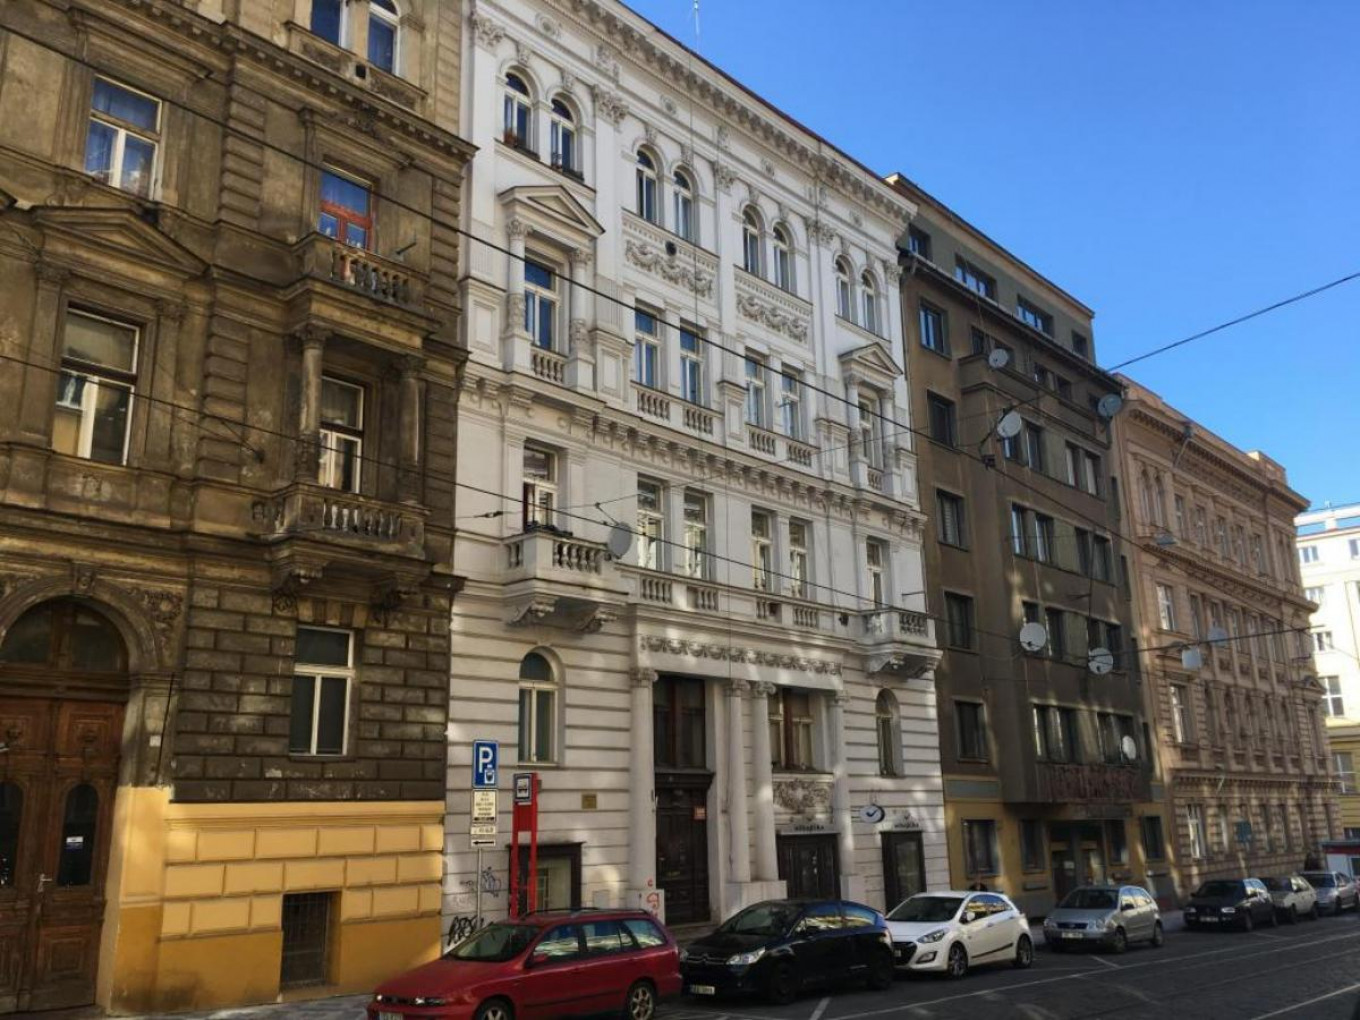 Three companies with links to Prigozhin are headquartered at the same nondescript historic building in Prague				 				OCCRP